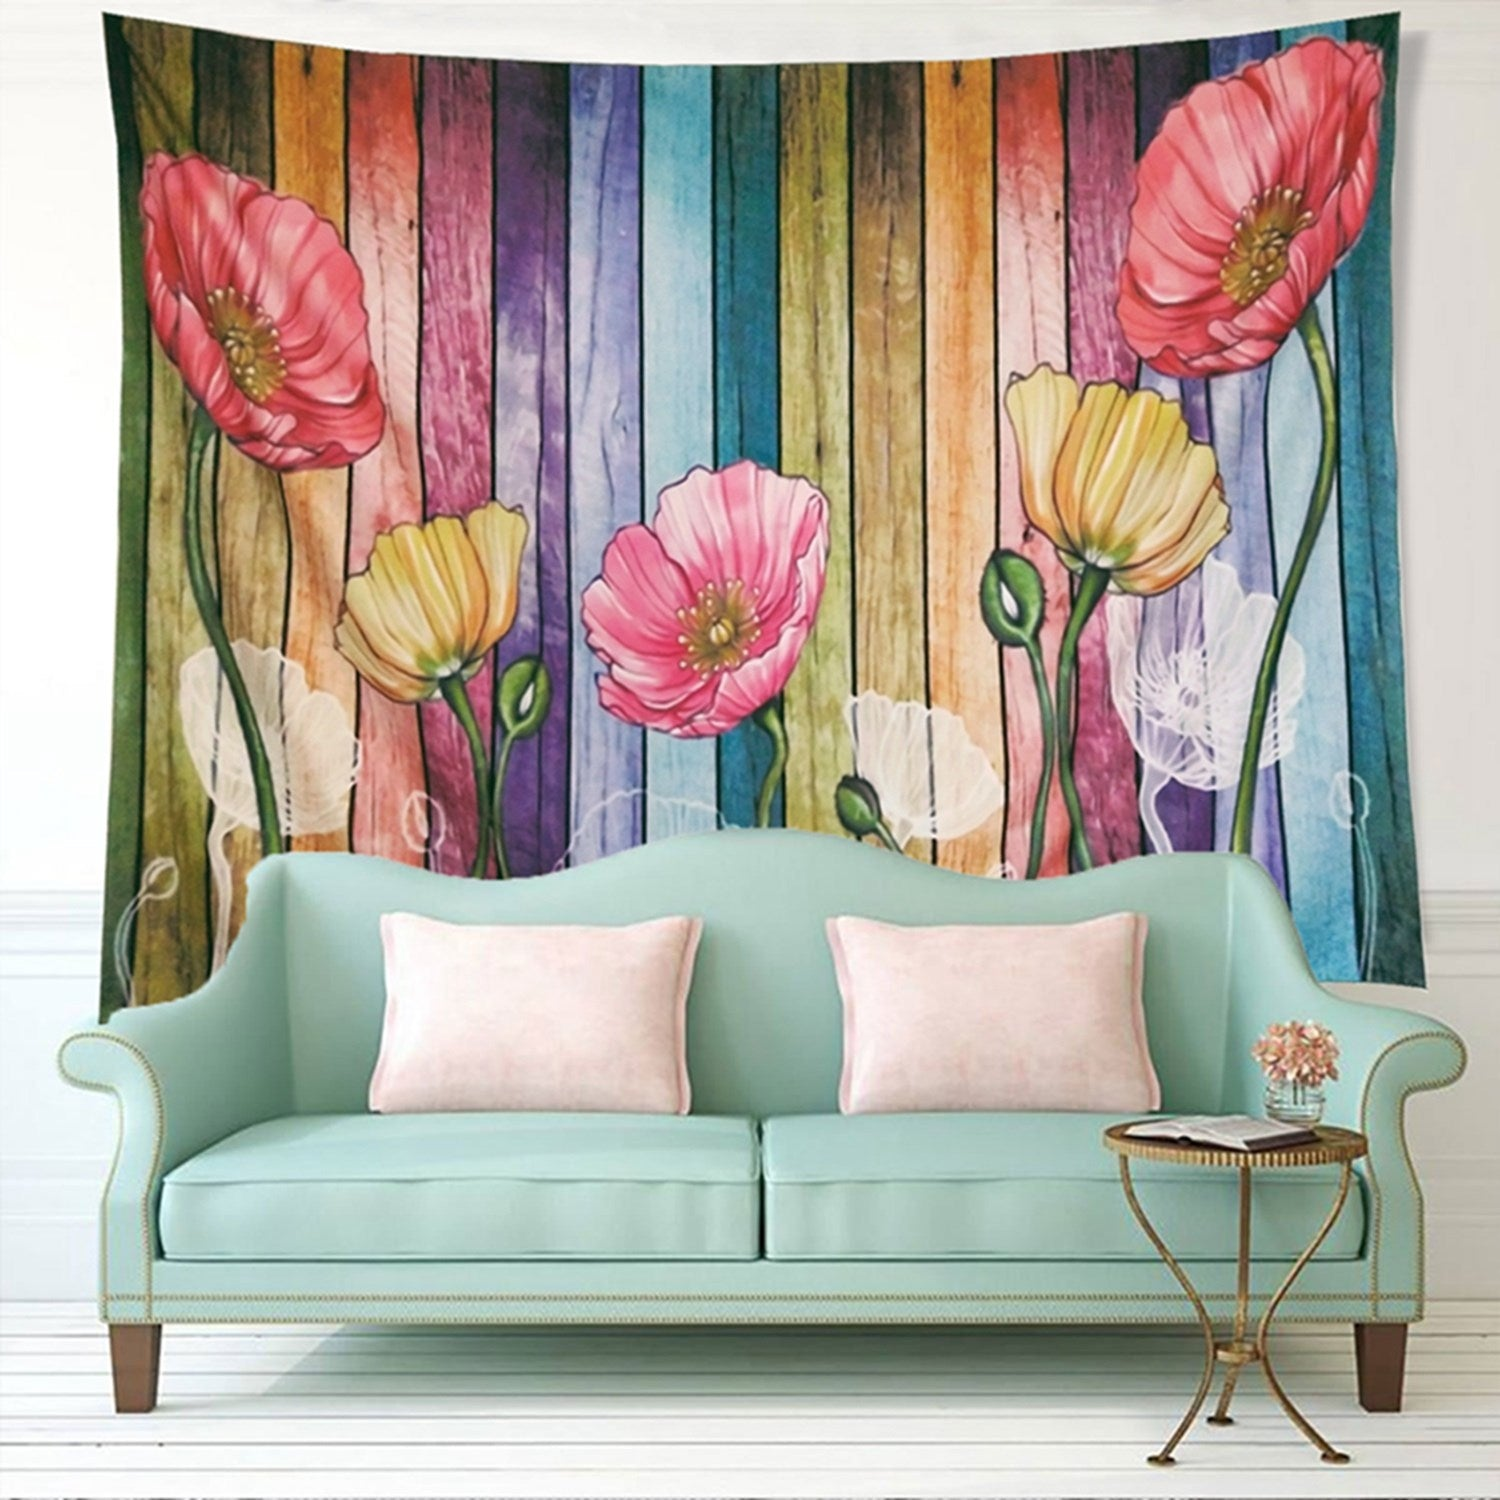 Retro Wood Plank Flower Colorful Tapestry Wall Hanging for Livingroom Bedroom Dorm Home Decor W79